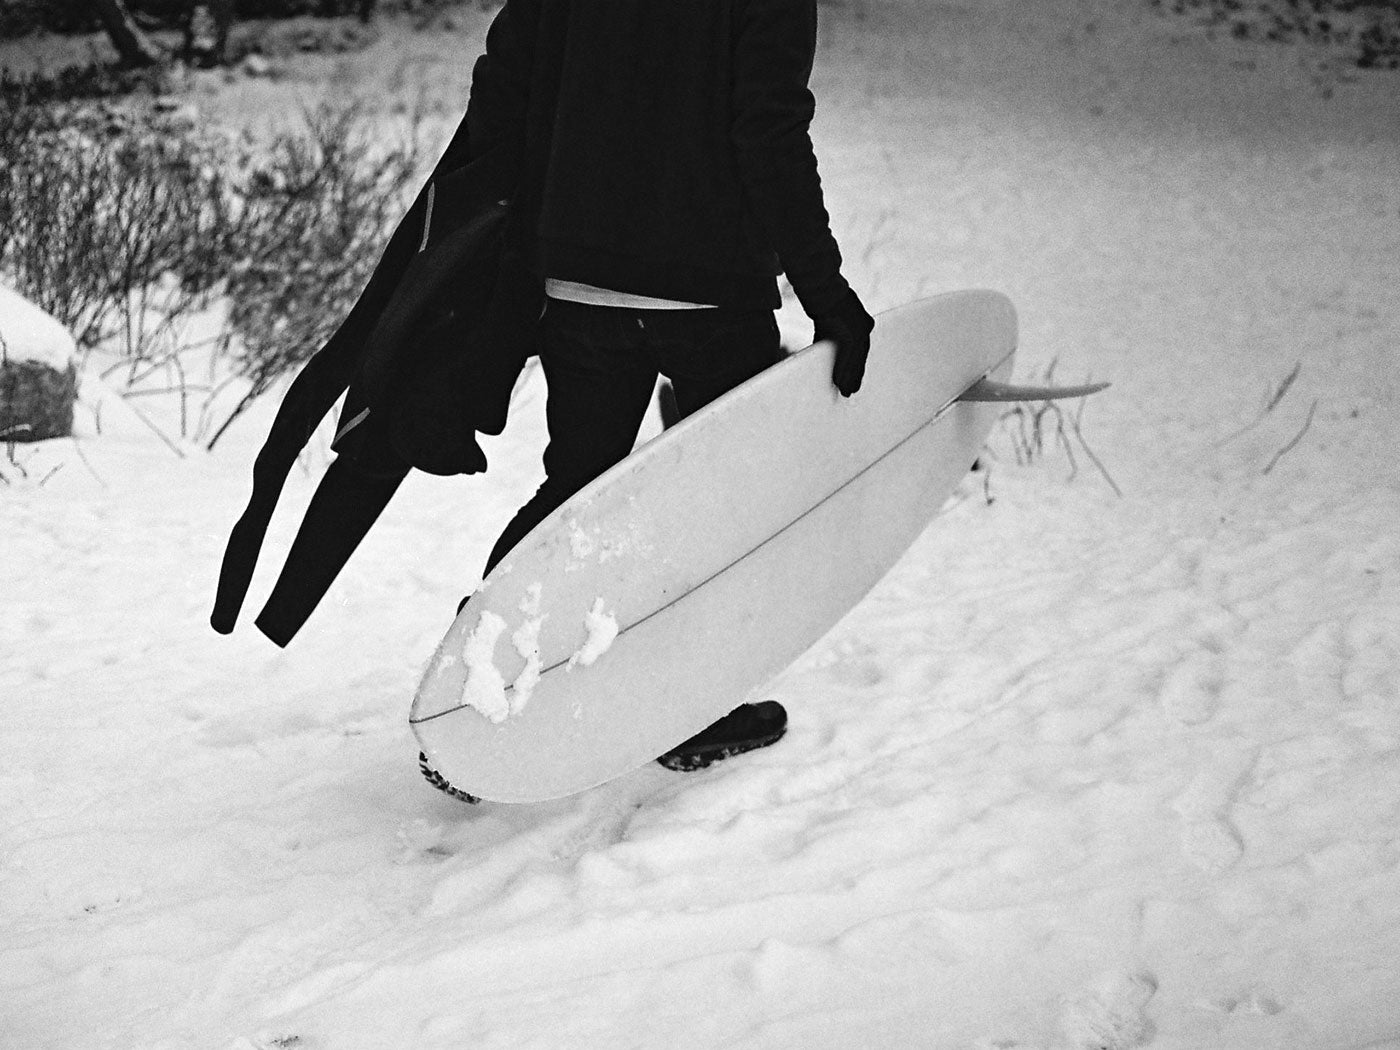 snow and self shaped stubbie surfboard